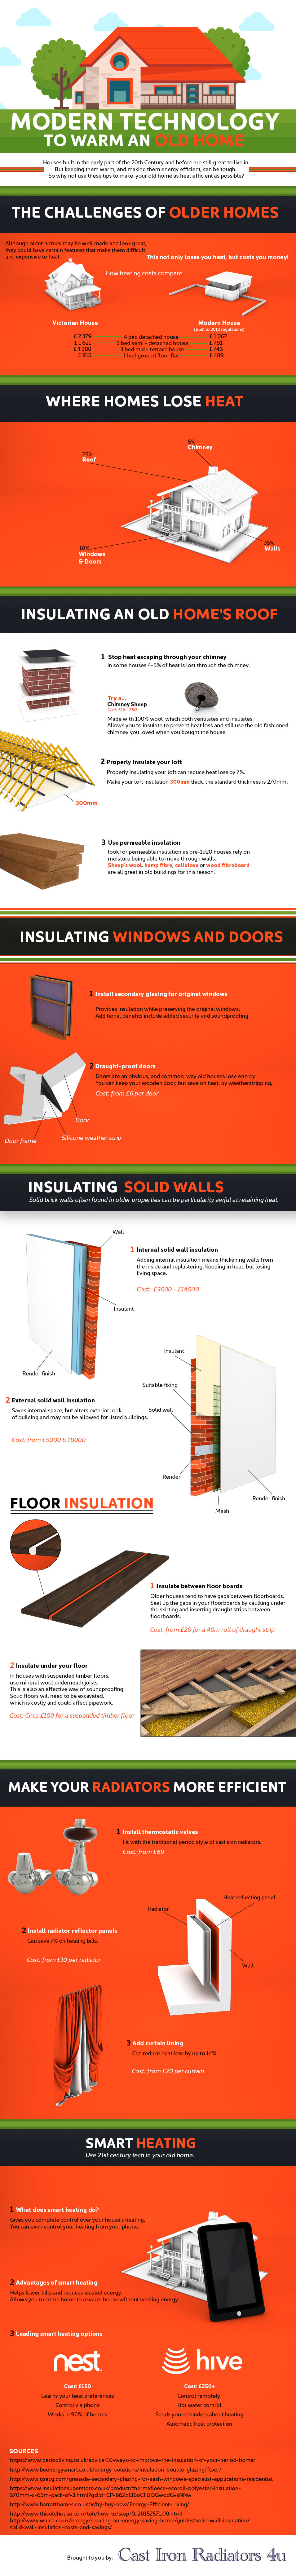 infographic on modern technology to warm an old home